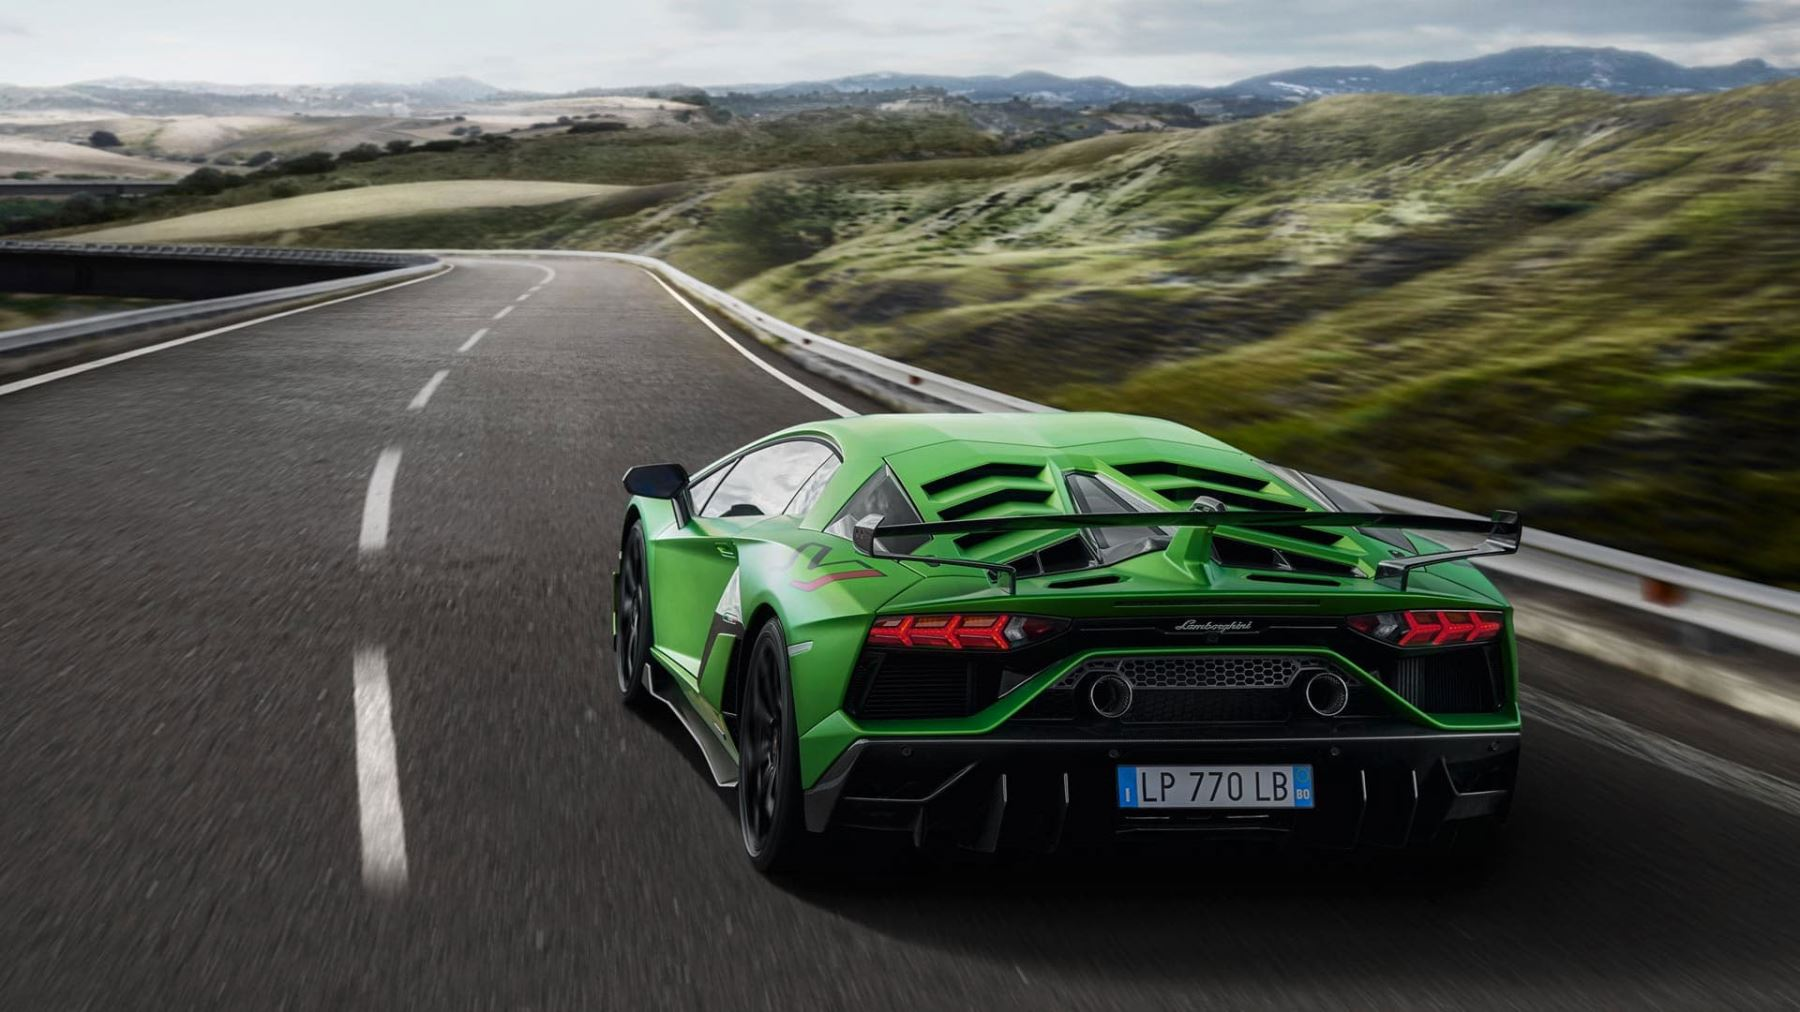 Lamborghini Aventador SVJ Coupe - Real Emotions Shape The Future image 6